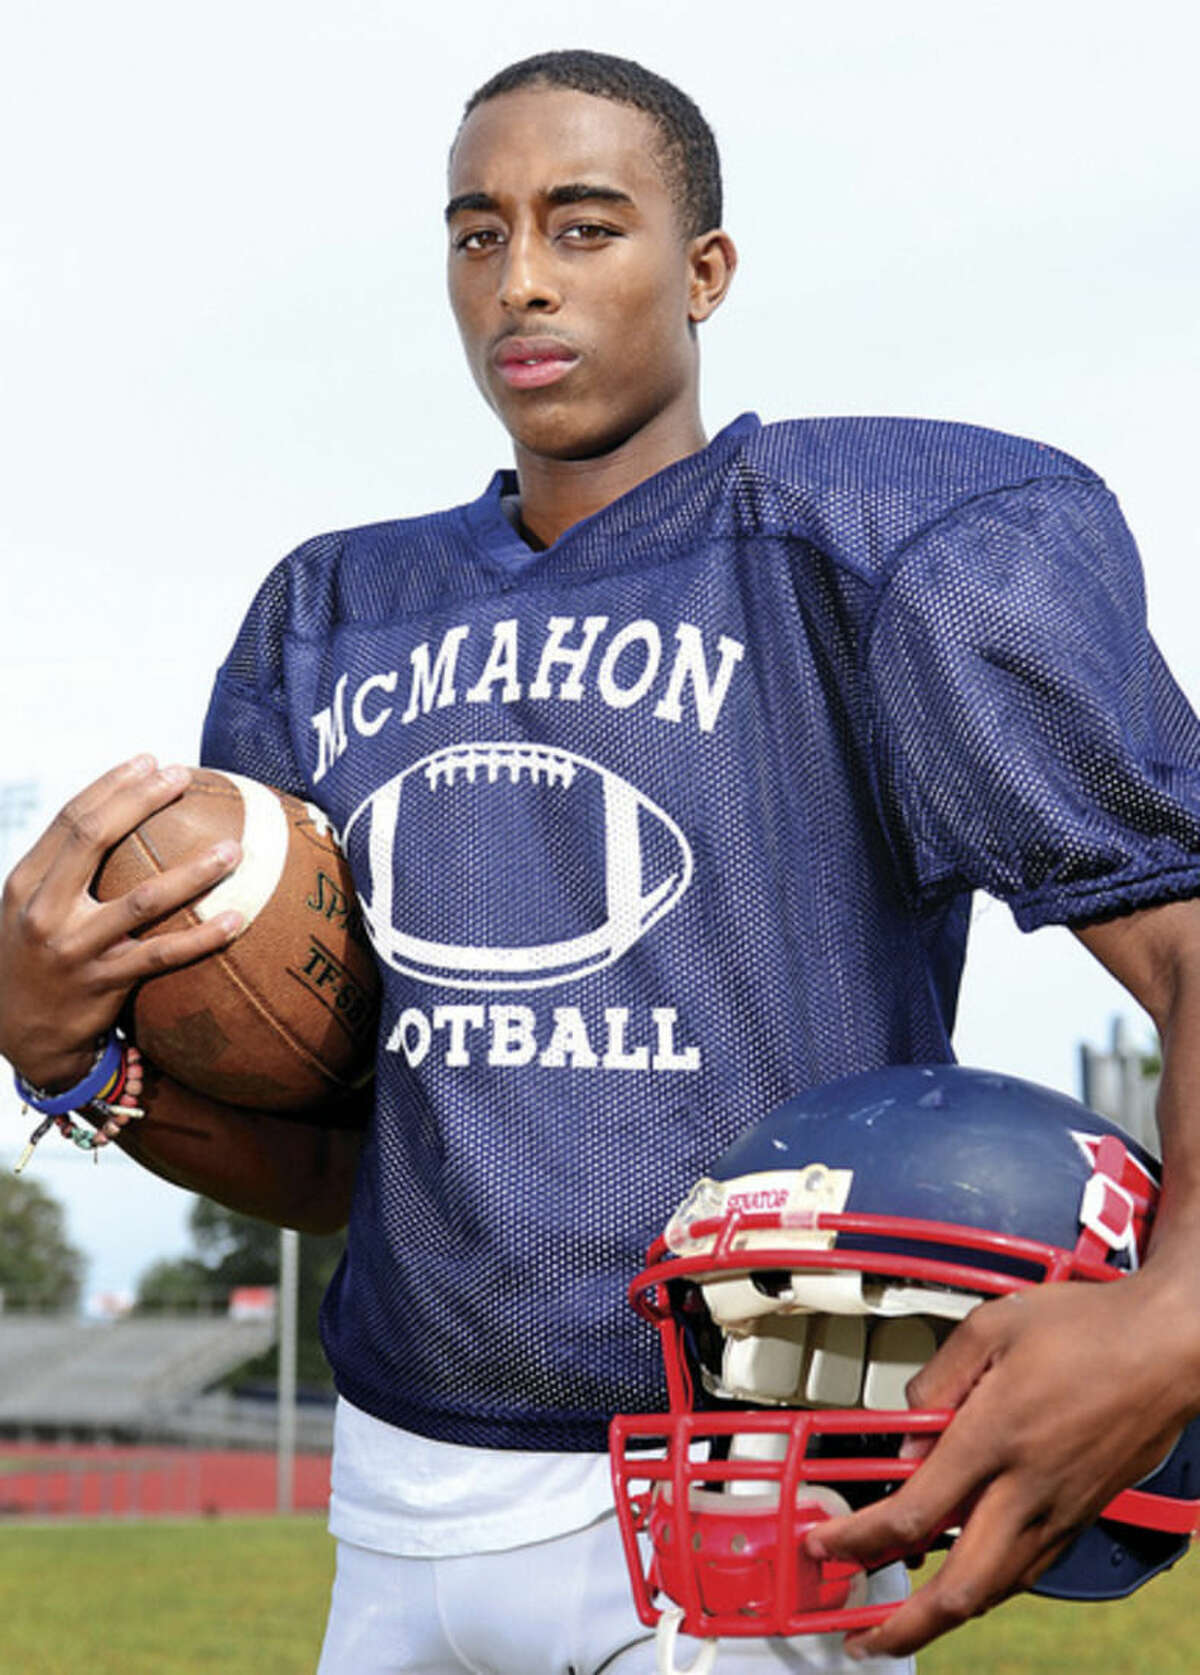 Hour photo/Erik Trautmann Brien McMahon High School senior running back Tyre Holman spent two years away from the football field, watching the games from the stands. He made the decision to return for his senior season, giving the Senators another weapon on offense.